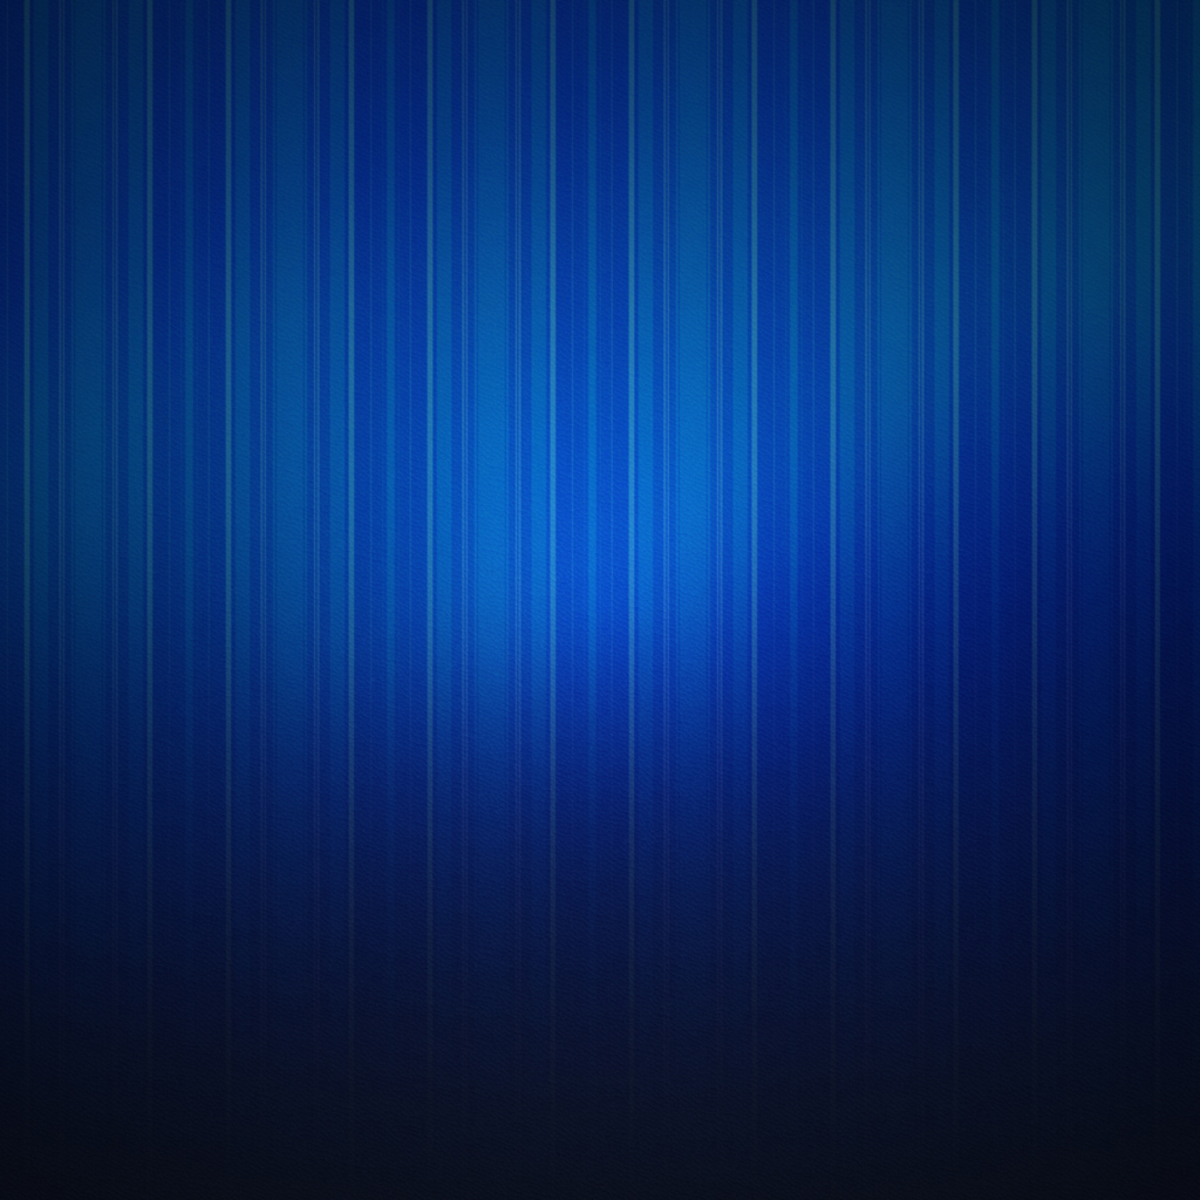 Plain Blue Backgrounds wallpaper Plain Blue Backgrounds hd wallpaper 1200x1200